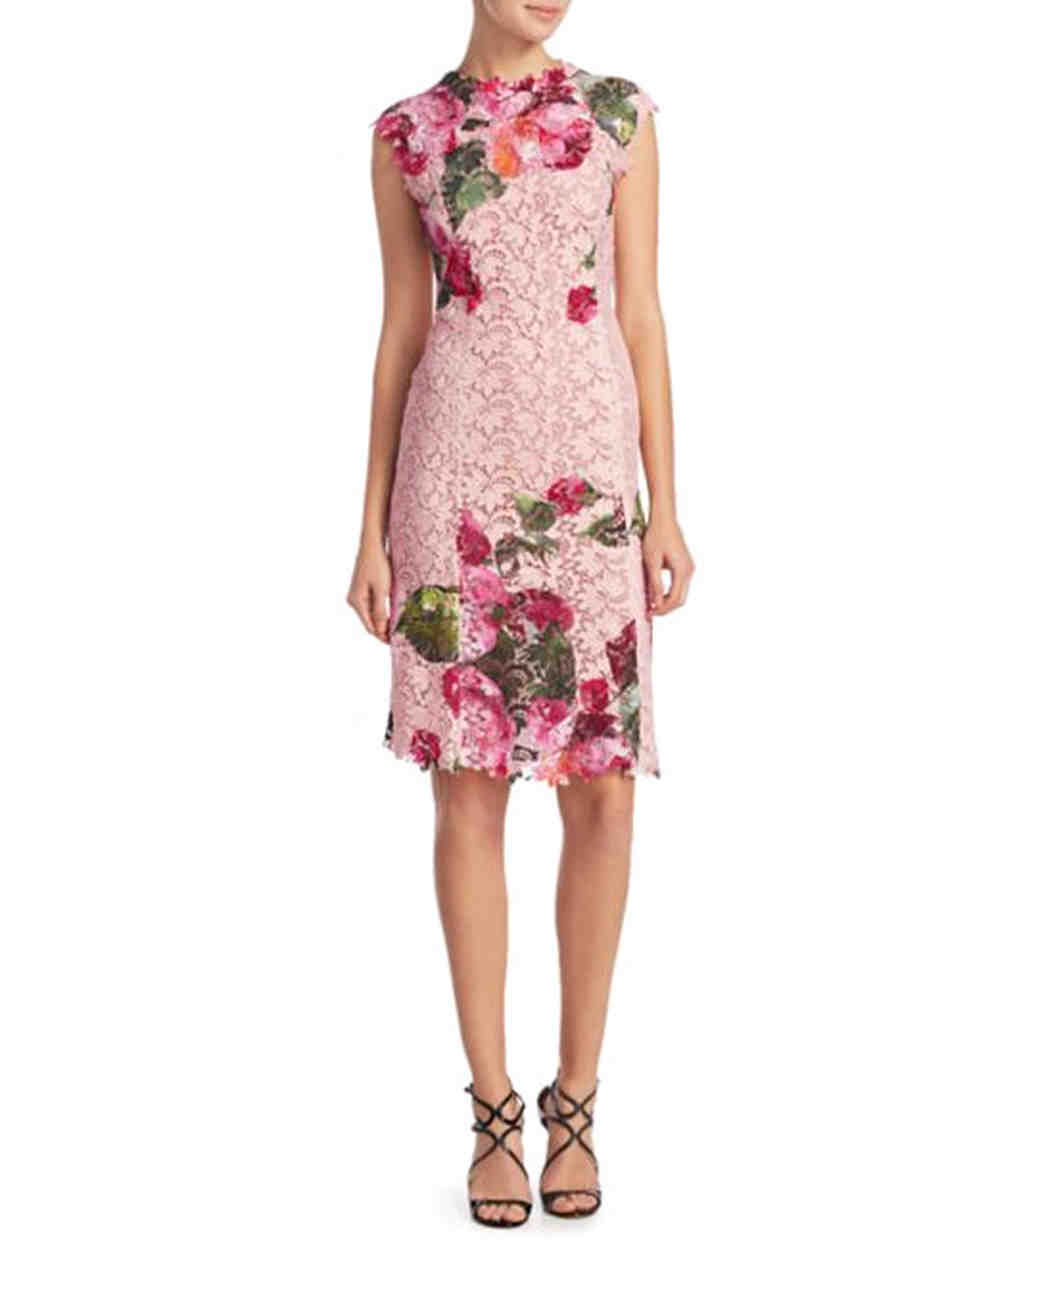 Monique Lhuillier floral-print dress